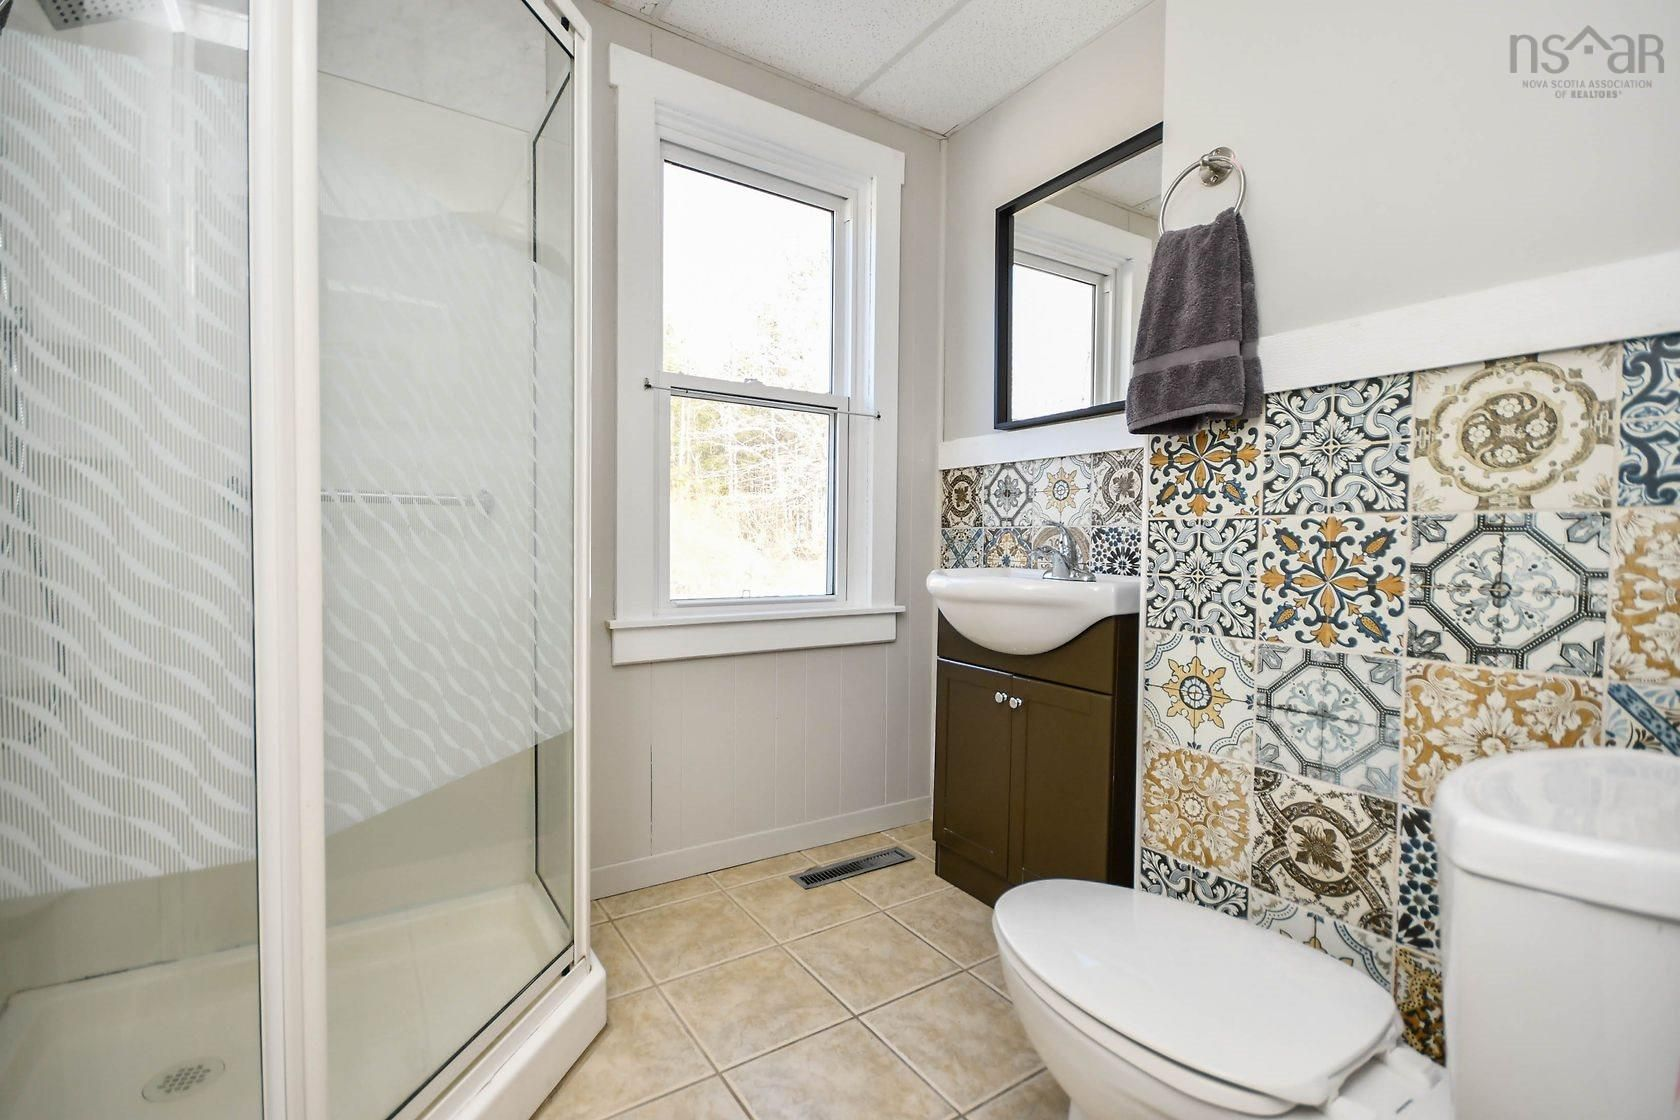 Photo 17: Photos: 284 East River Road in Sheet Harbour: 35-Halifax County East Residential for sale (Halifax-Dartmouth)  : MLS®# 202120104